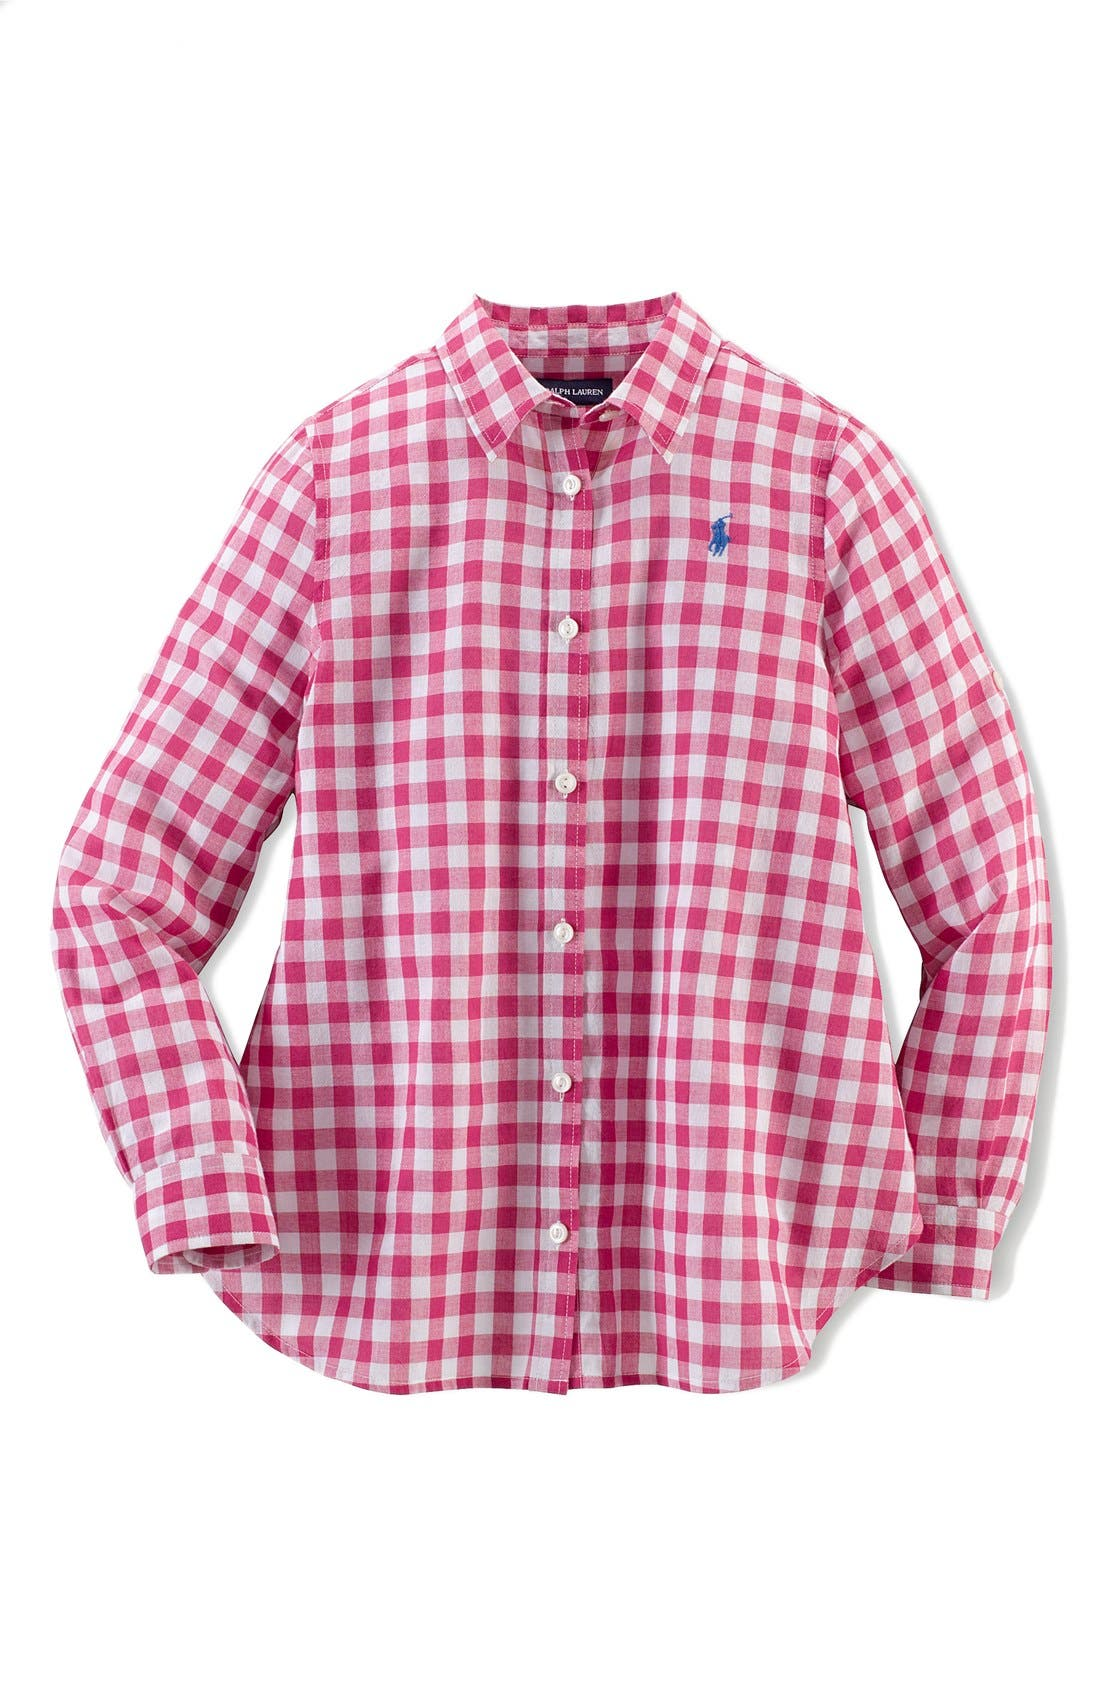 Alternate Image 1 Selected - Ralph Lauren Gingham Cotton Gauze Shirt (Big Girls)